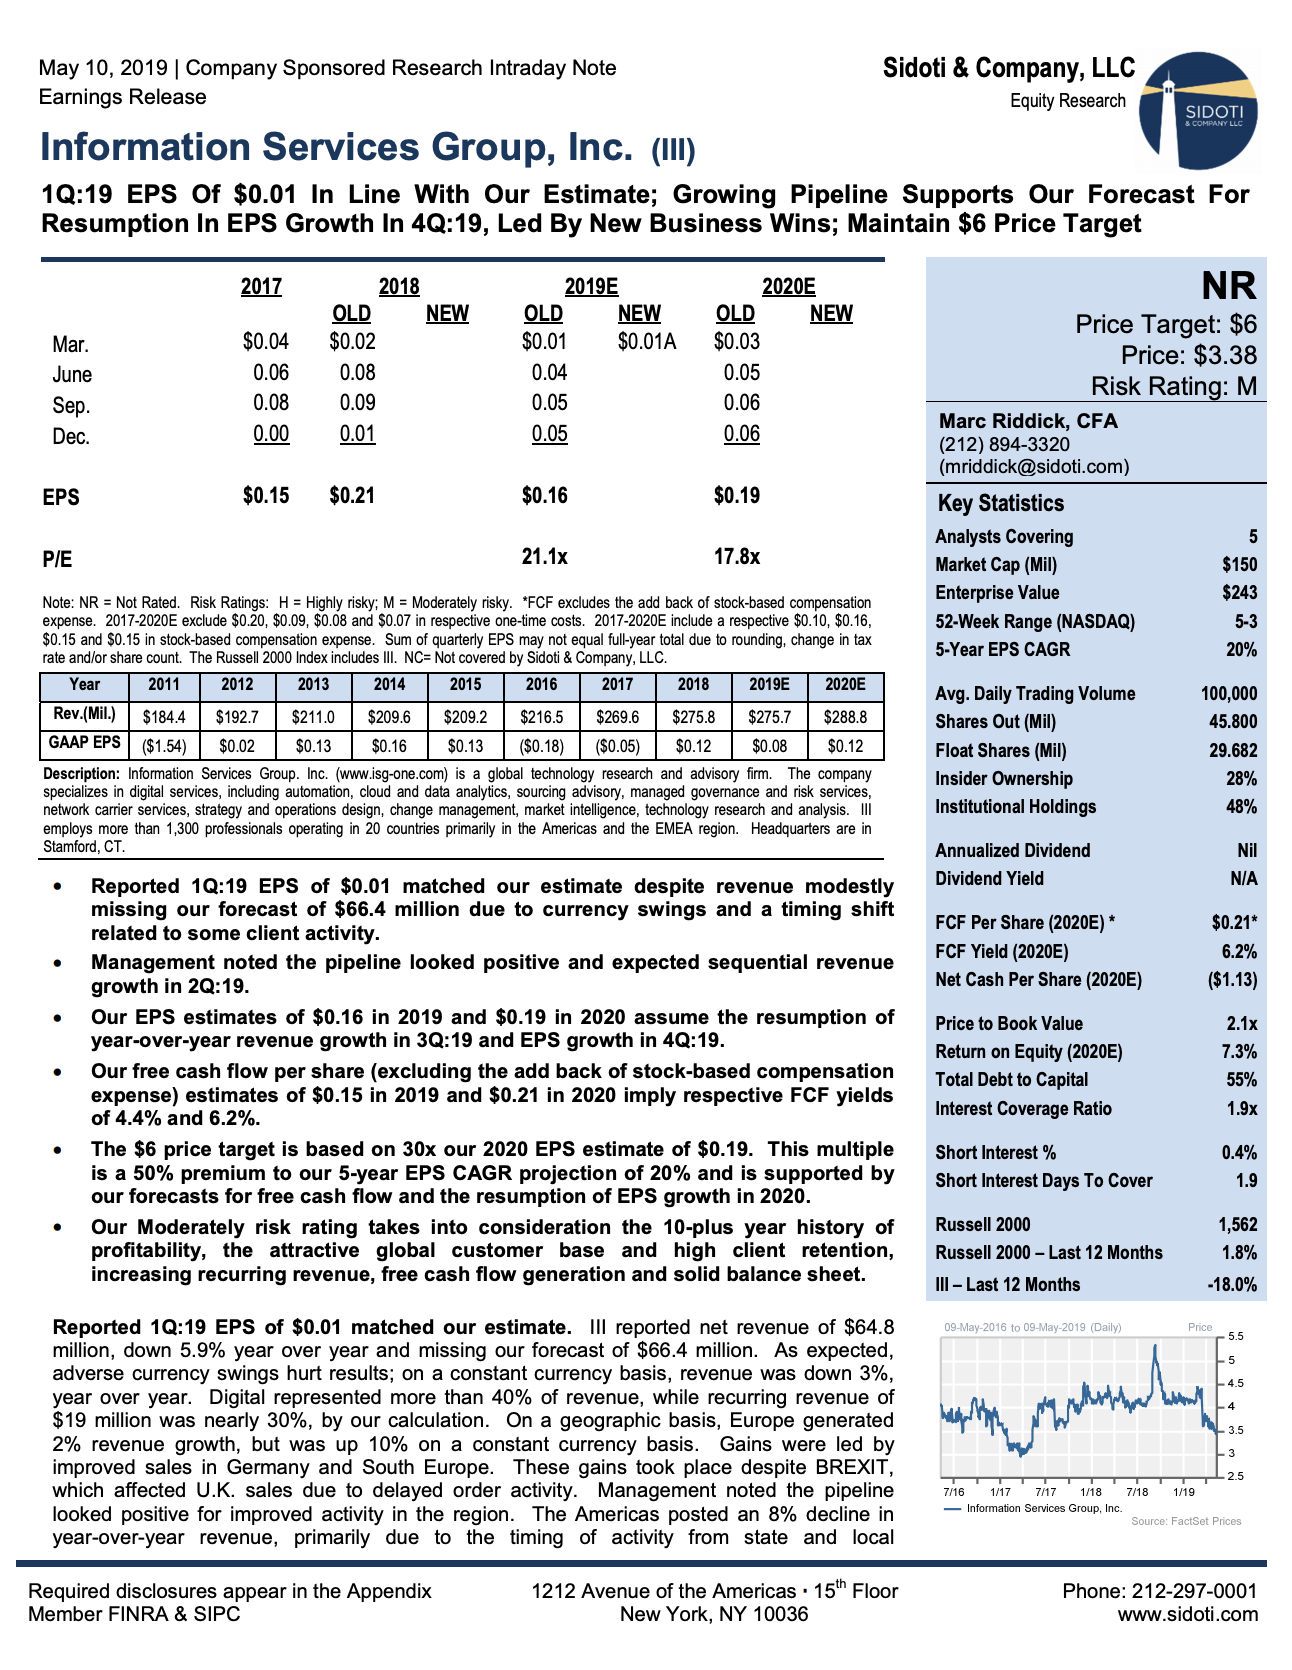 Earnings Release: May 10, 2019